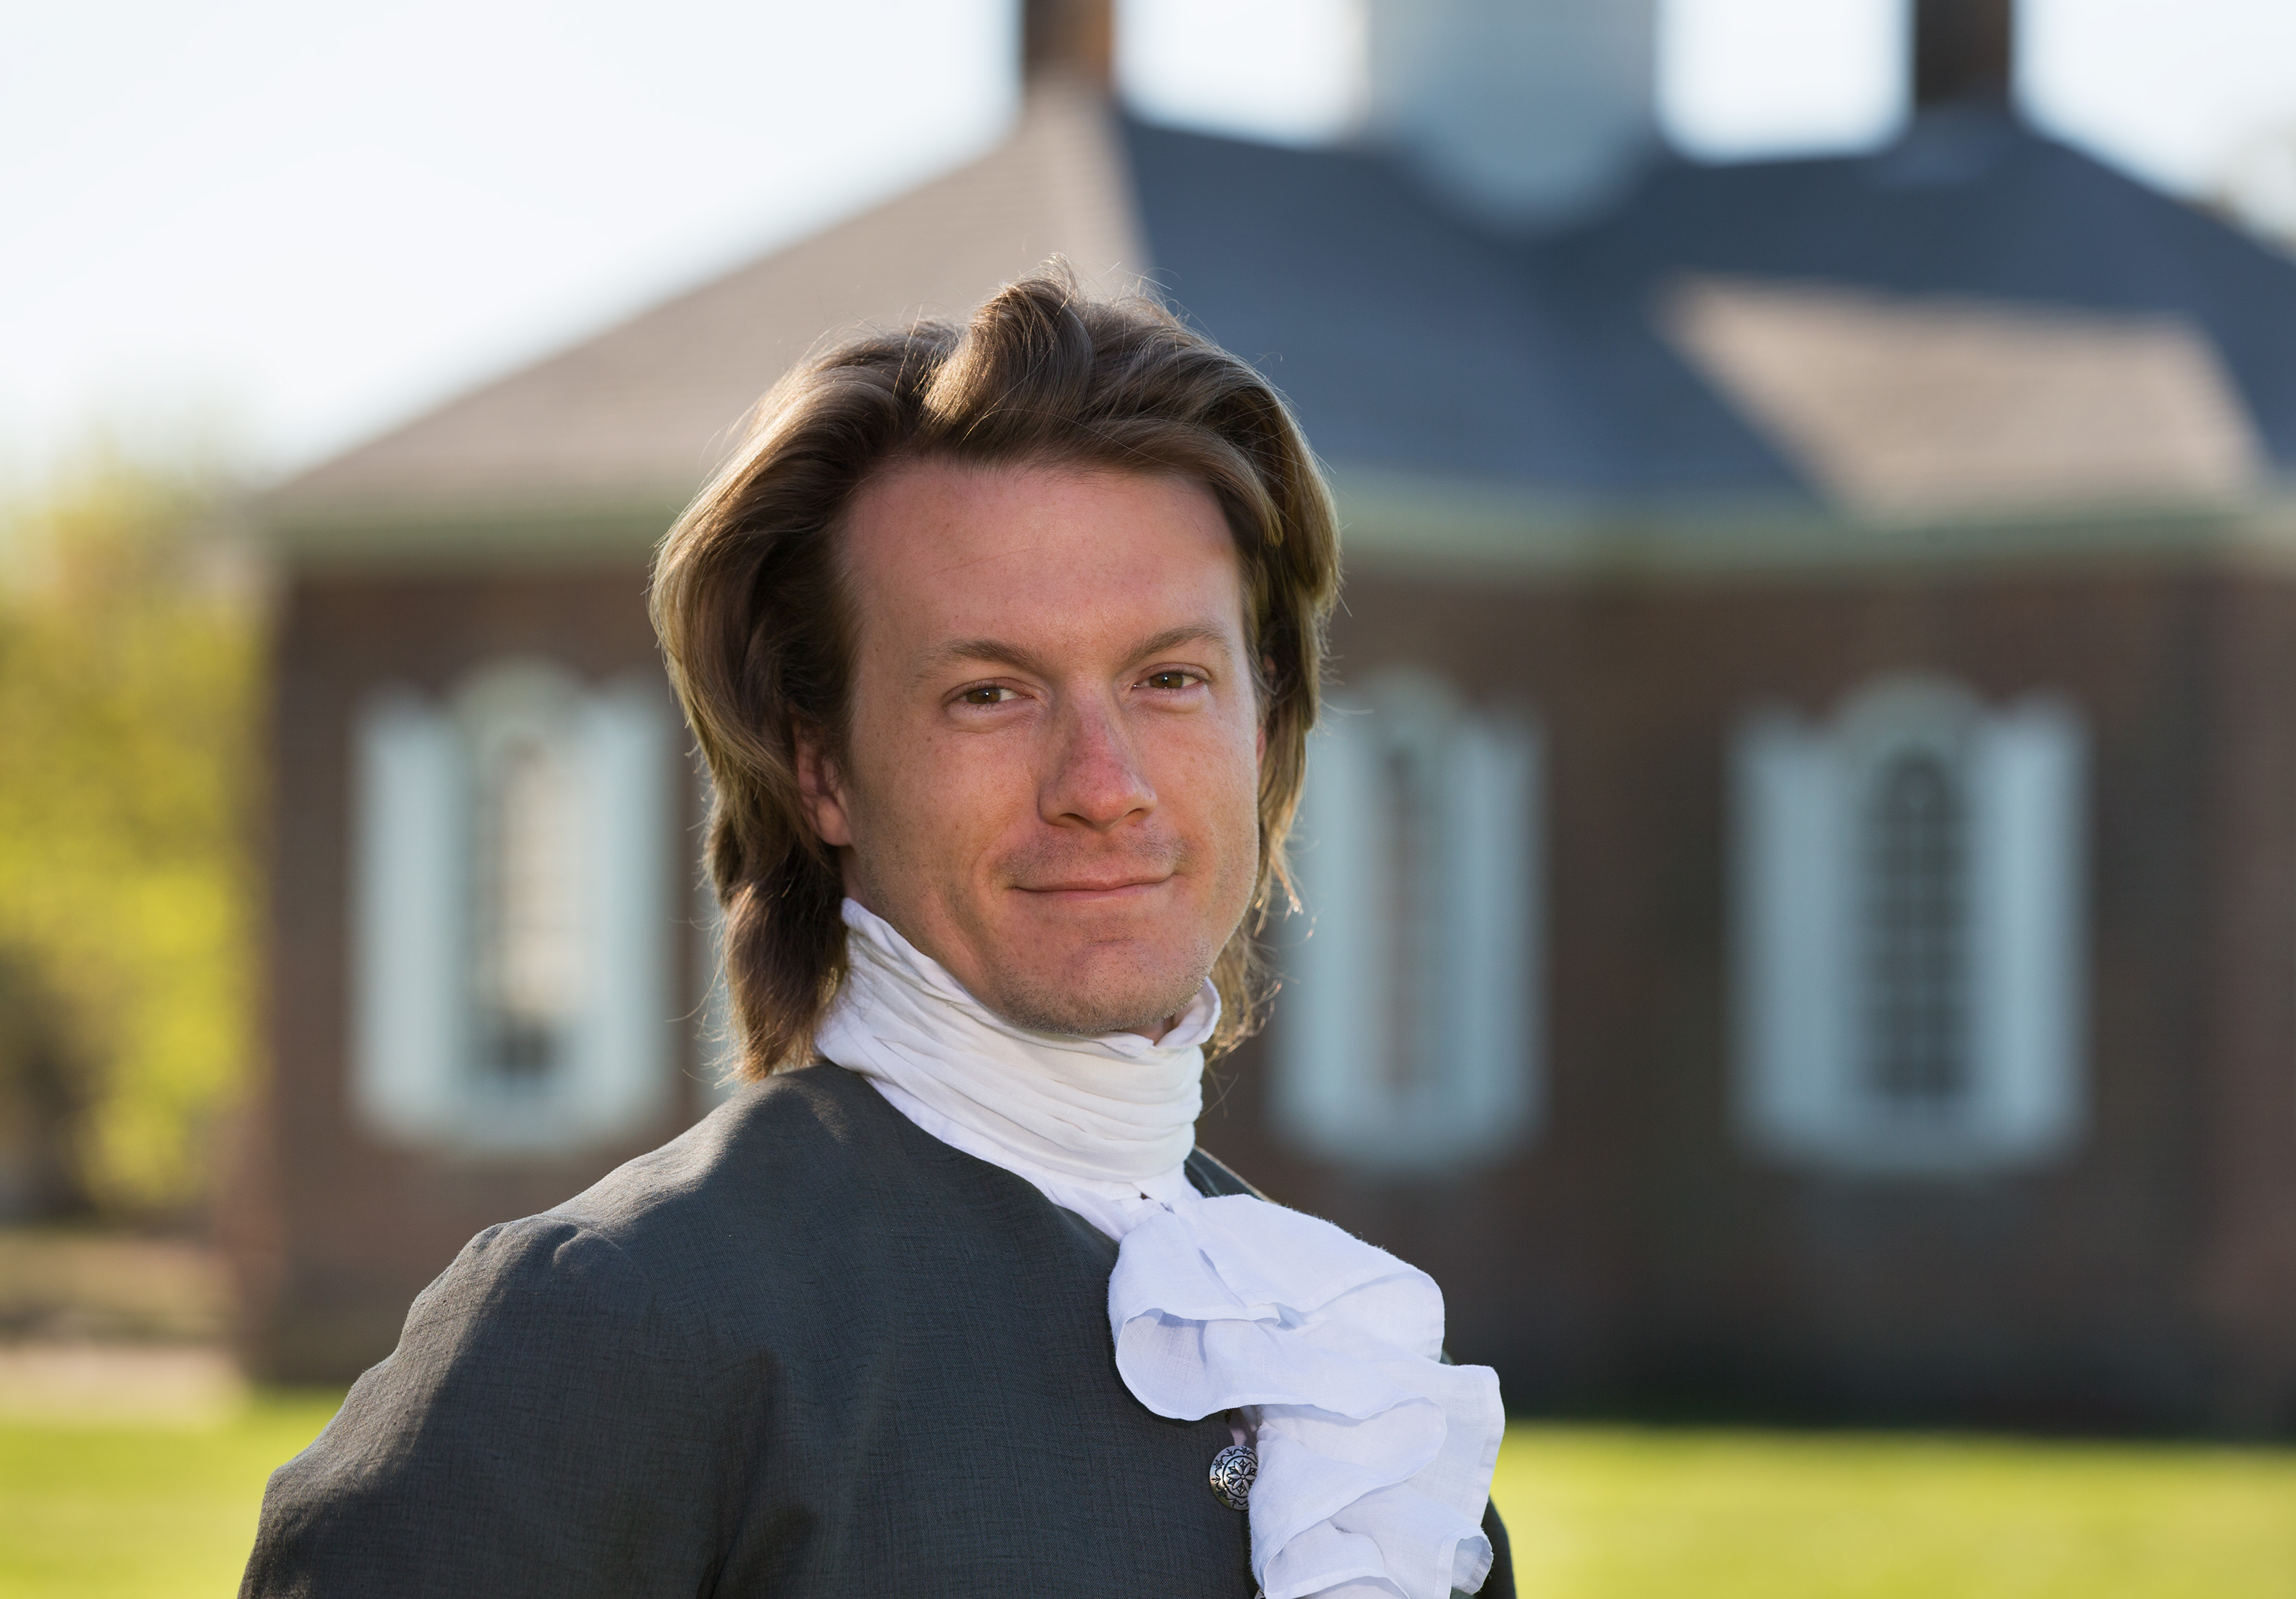 Actor dressed up as Thomas Jefferson